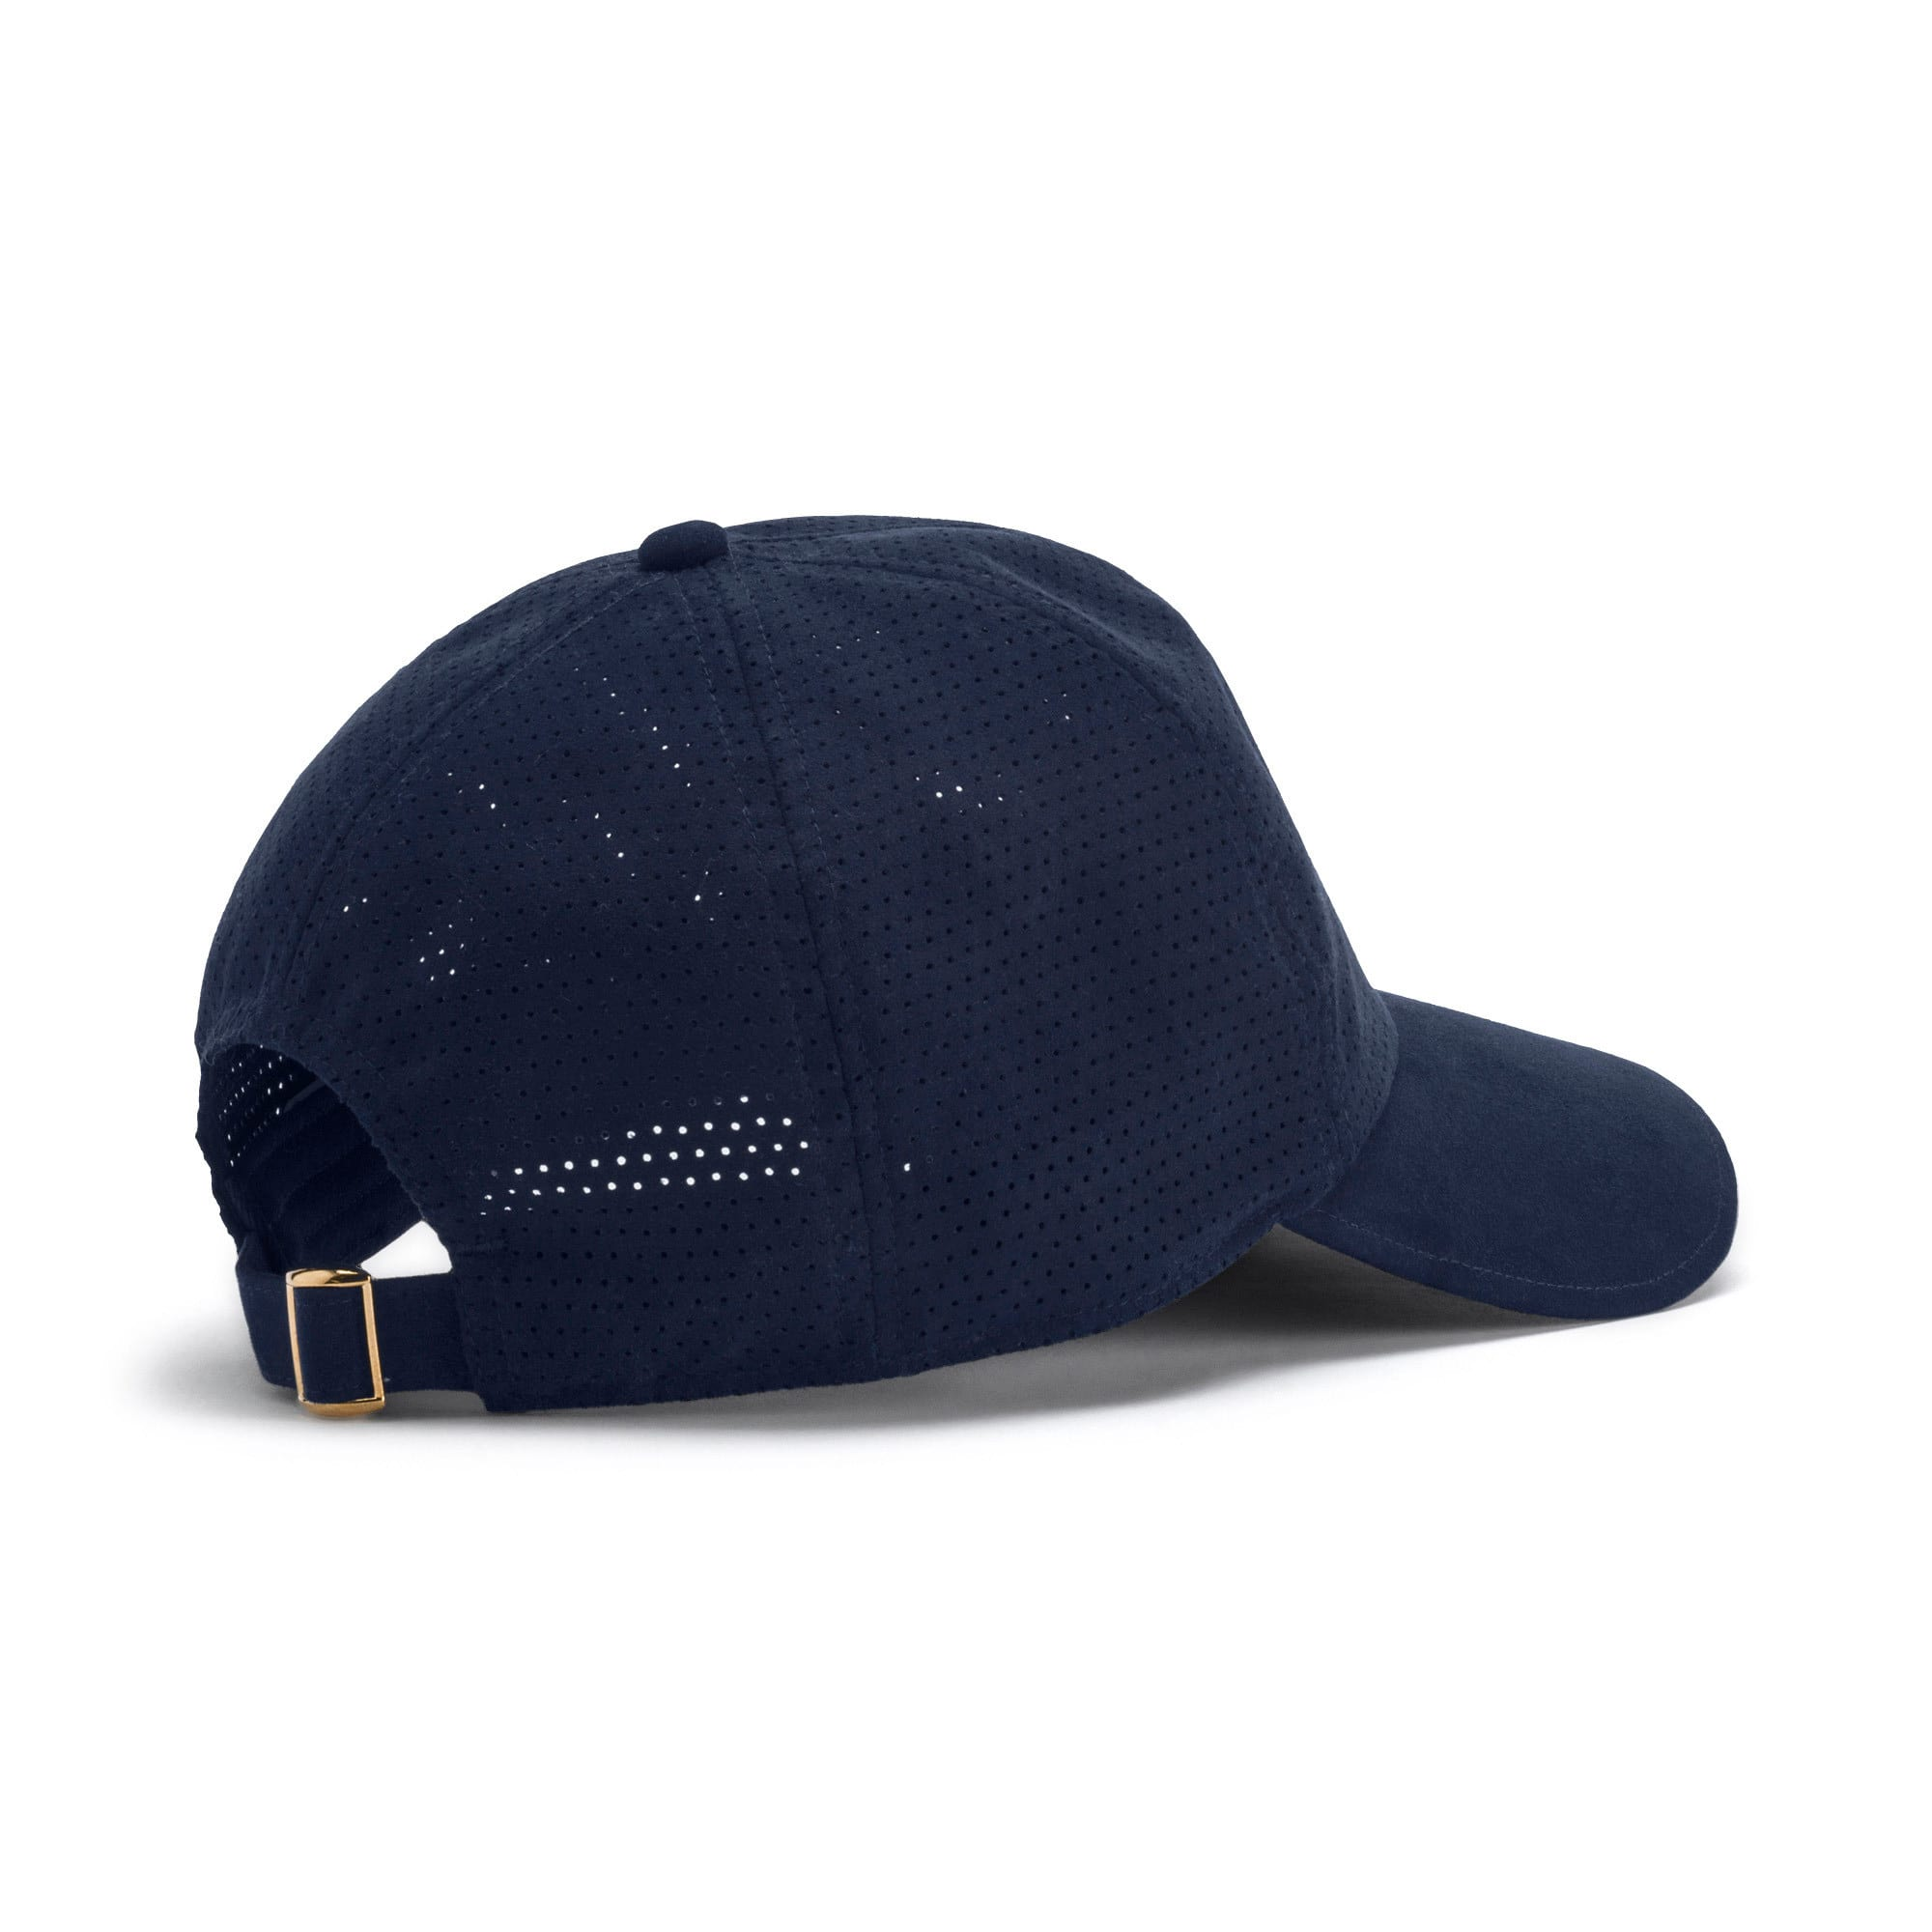 Thumbnail 2 of Suede Baseball Cap, Peacoat, medium